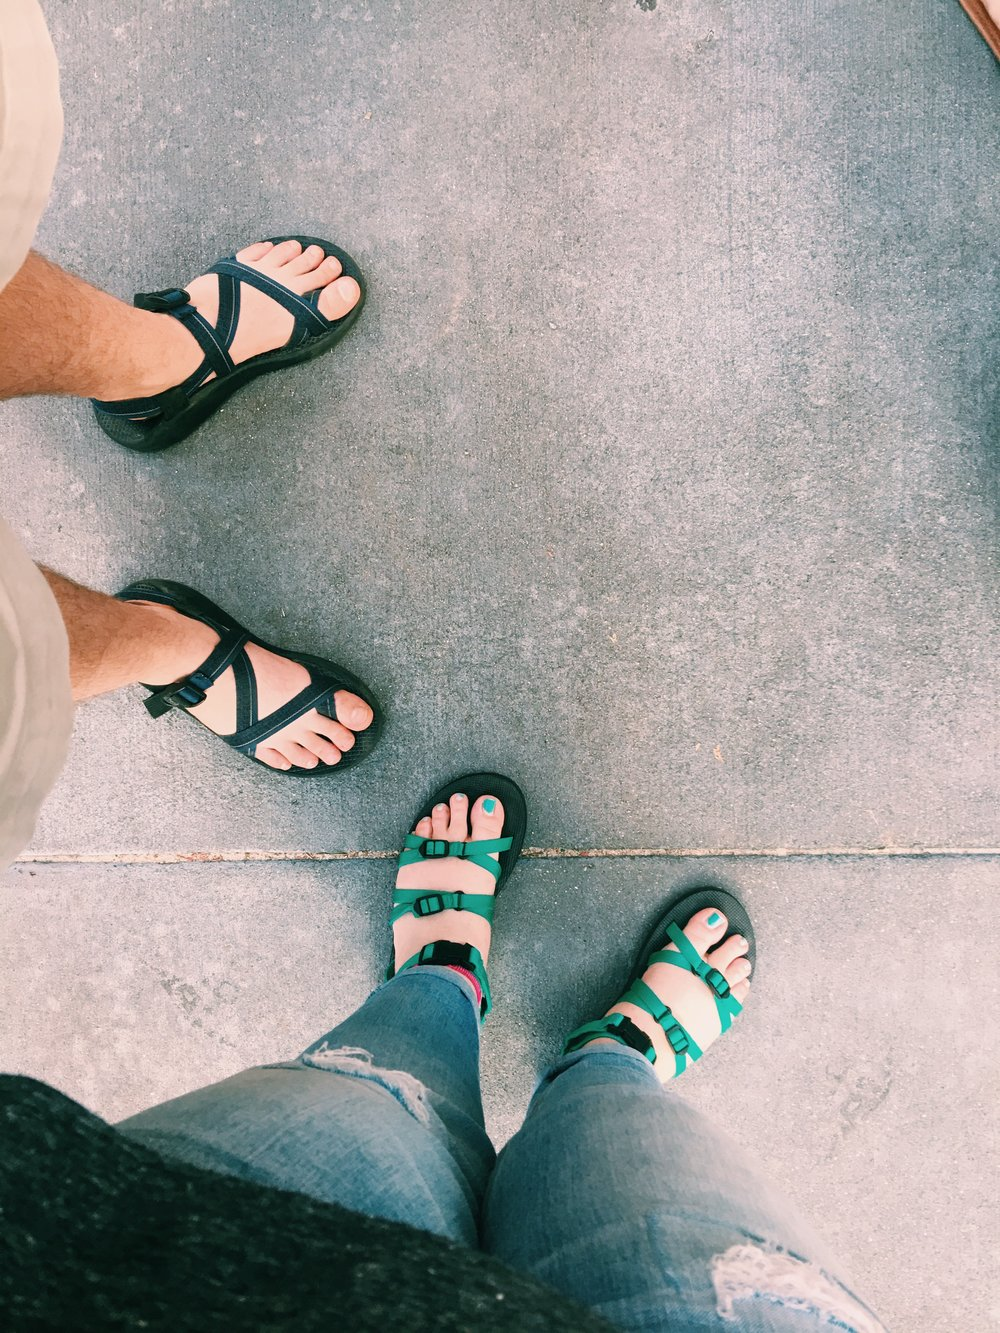 Chacos and Teva sandals